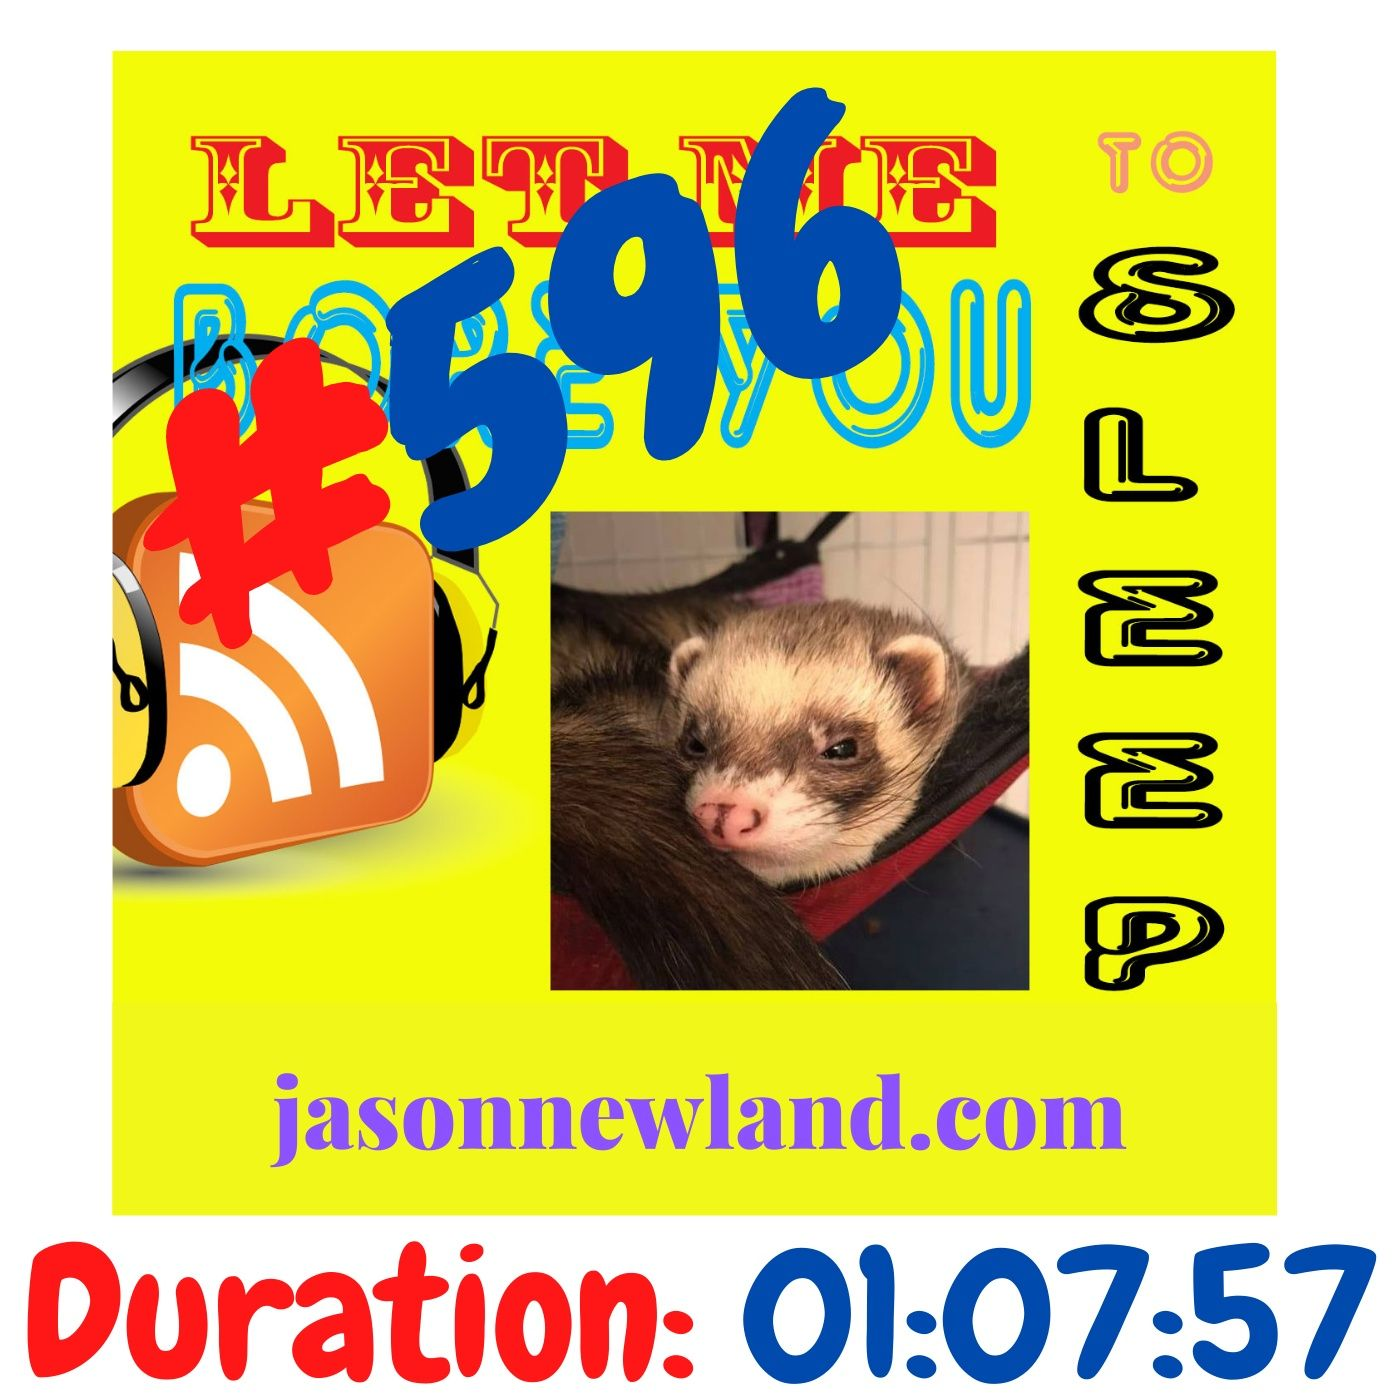 "#596 Let me bore you to sleep ""COMING TO USA"" - Jason Newland (16th February 2021)"